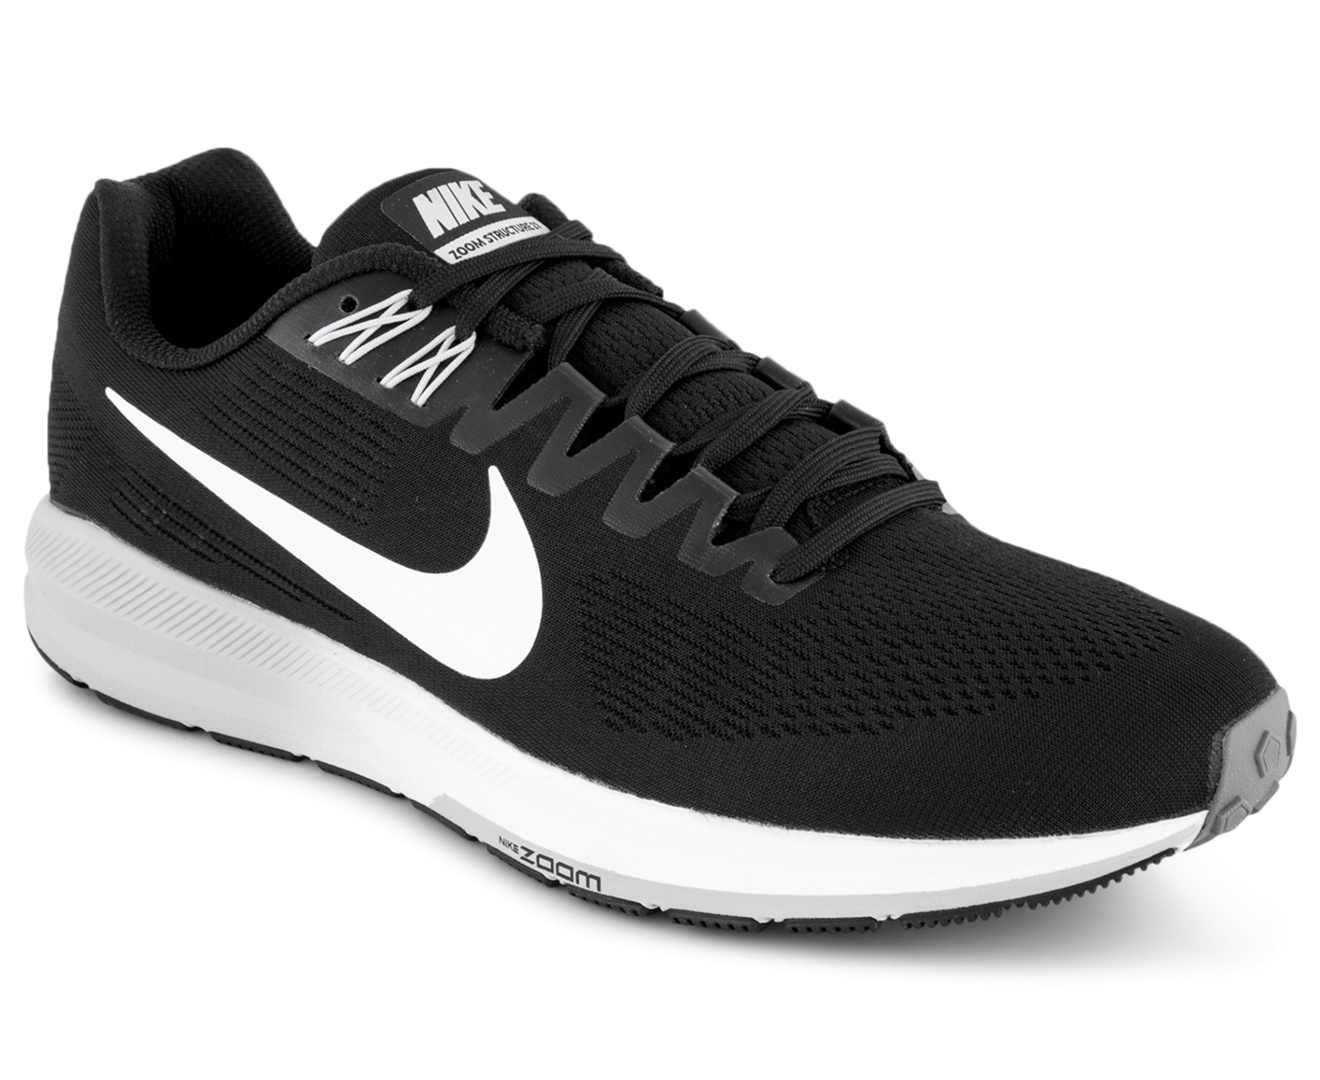 845a439613ae Nike Men s Air Zoom Structure 21 Shoe - Black White-Wolf Grey ...